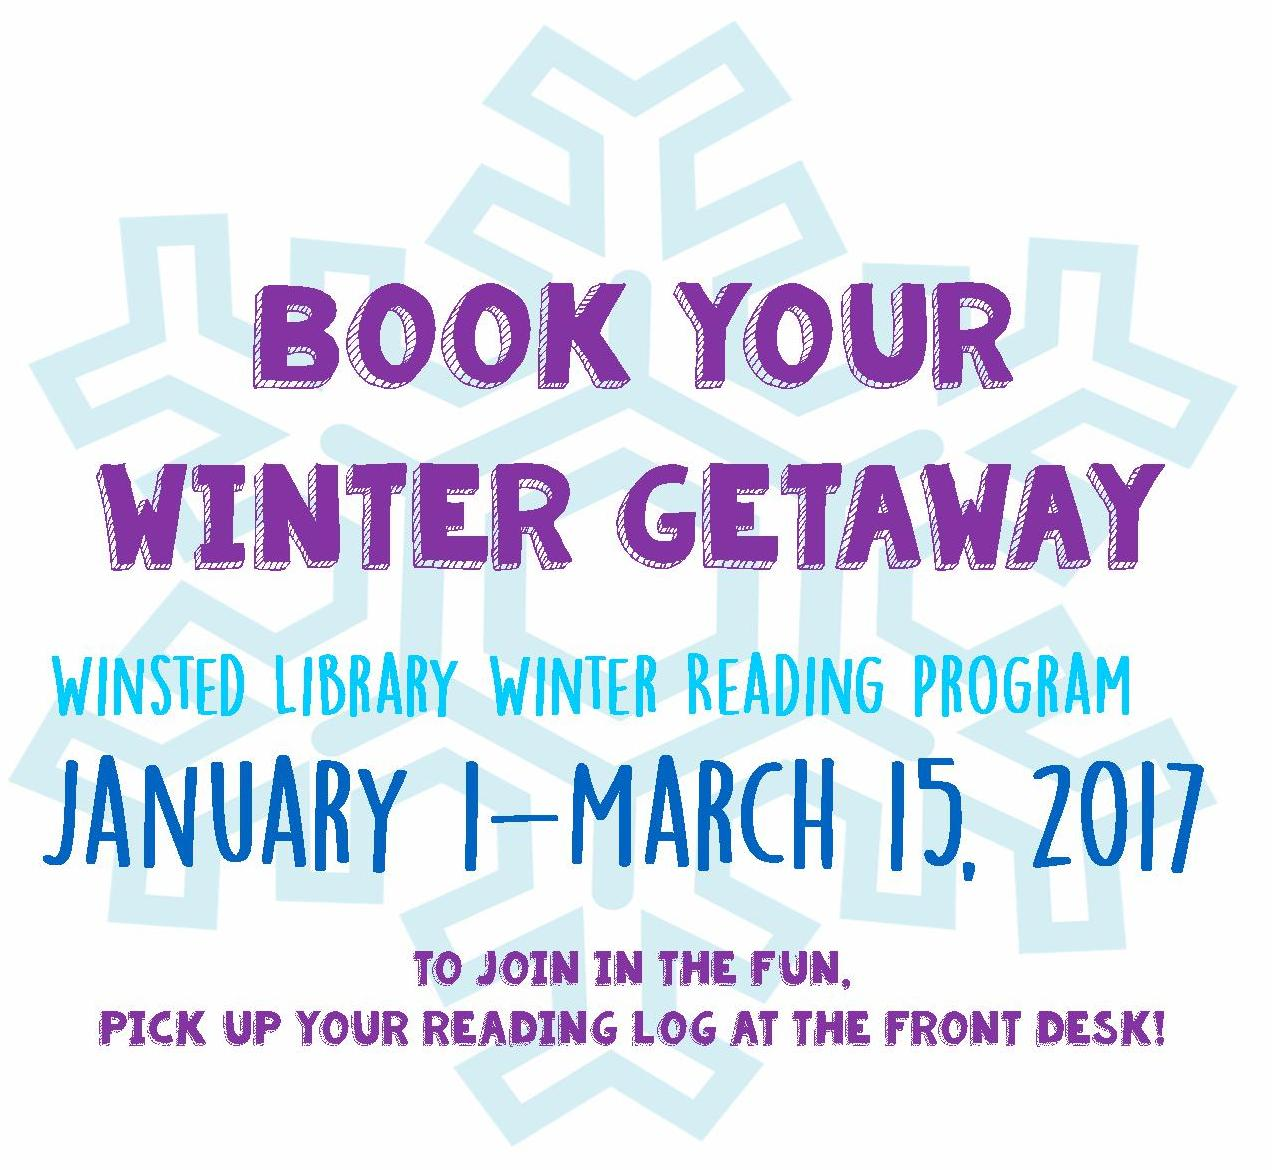 Winter Reading Program 2017